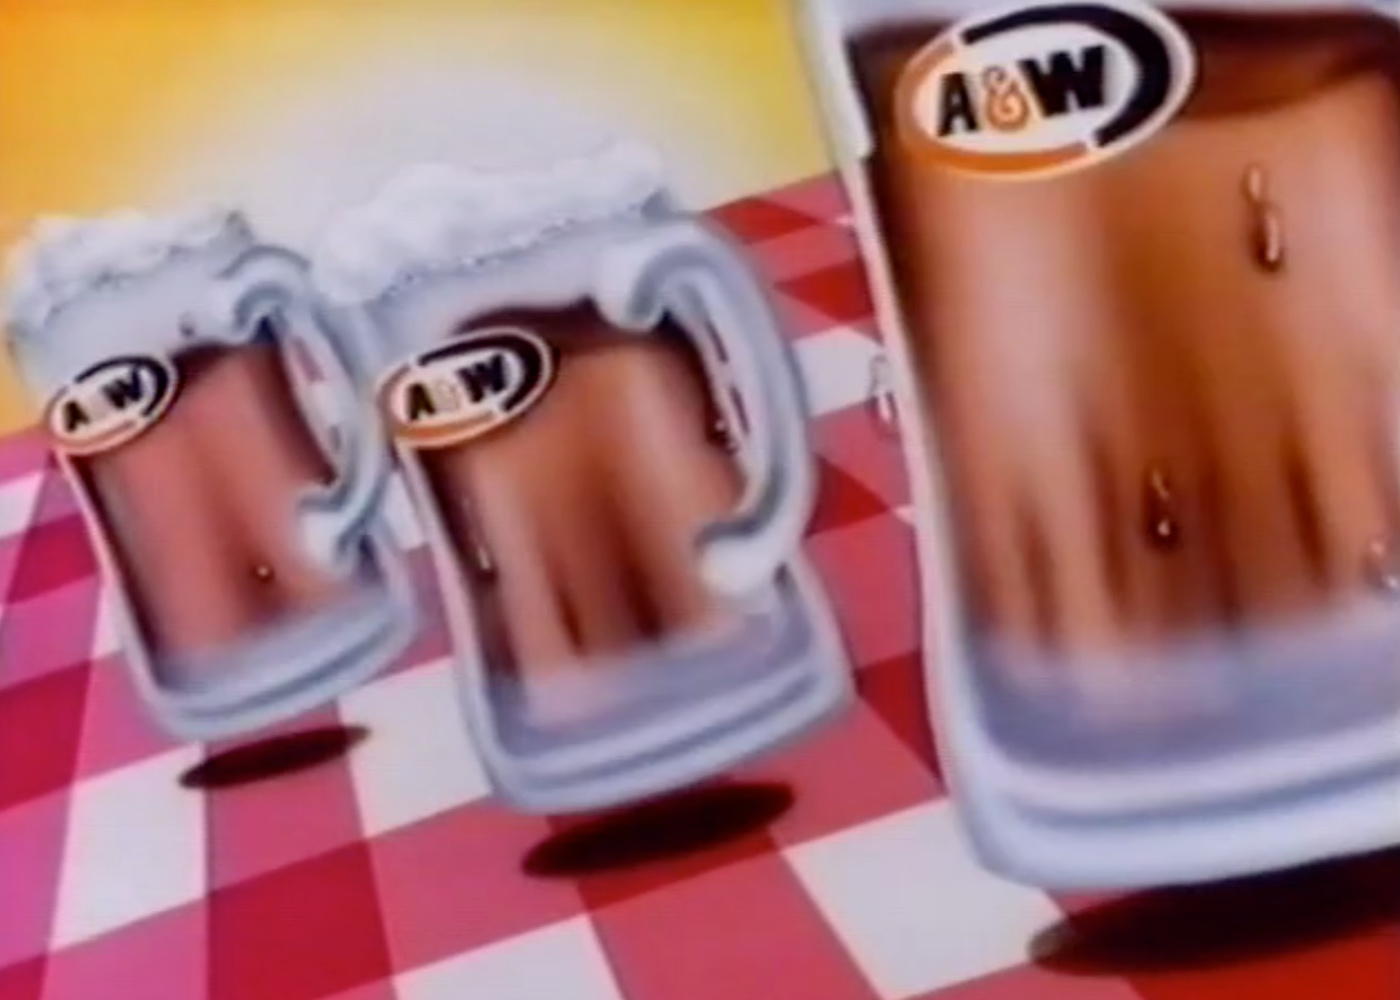 Drawing of three A&W Root Beer Mugs